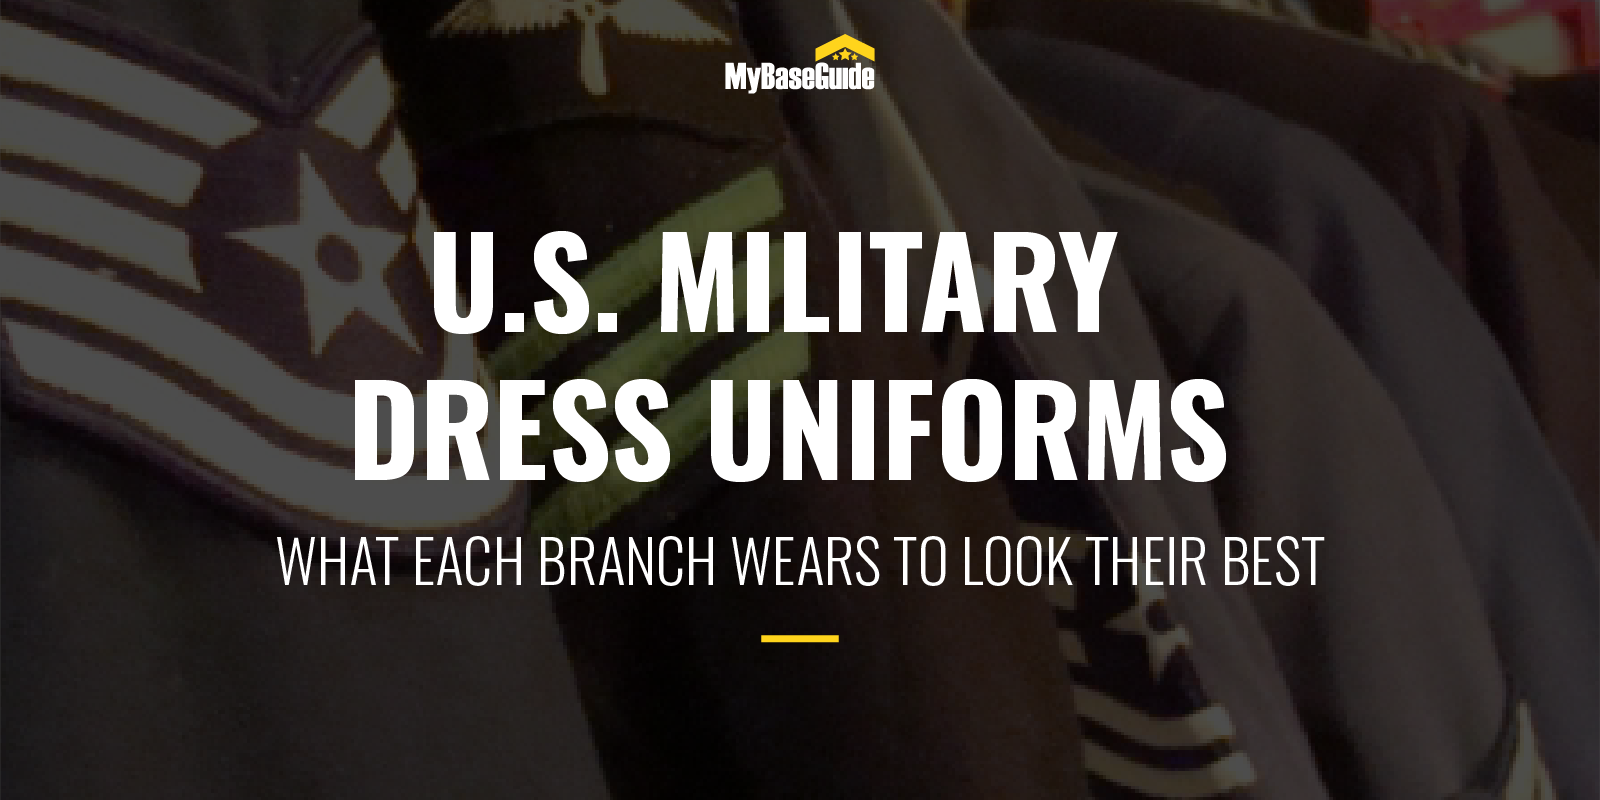 U.S. Military Dress Uniforms: What Each Branch Wears To Look Their Best